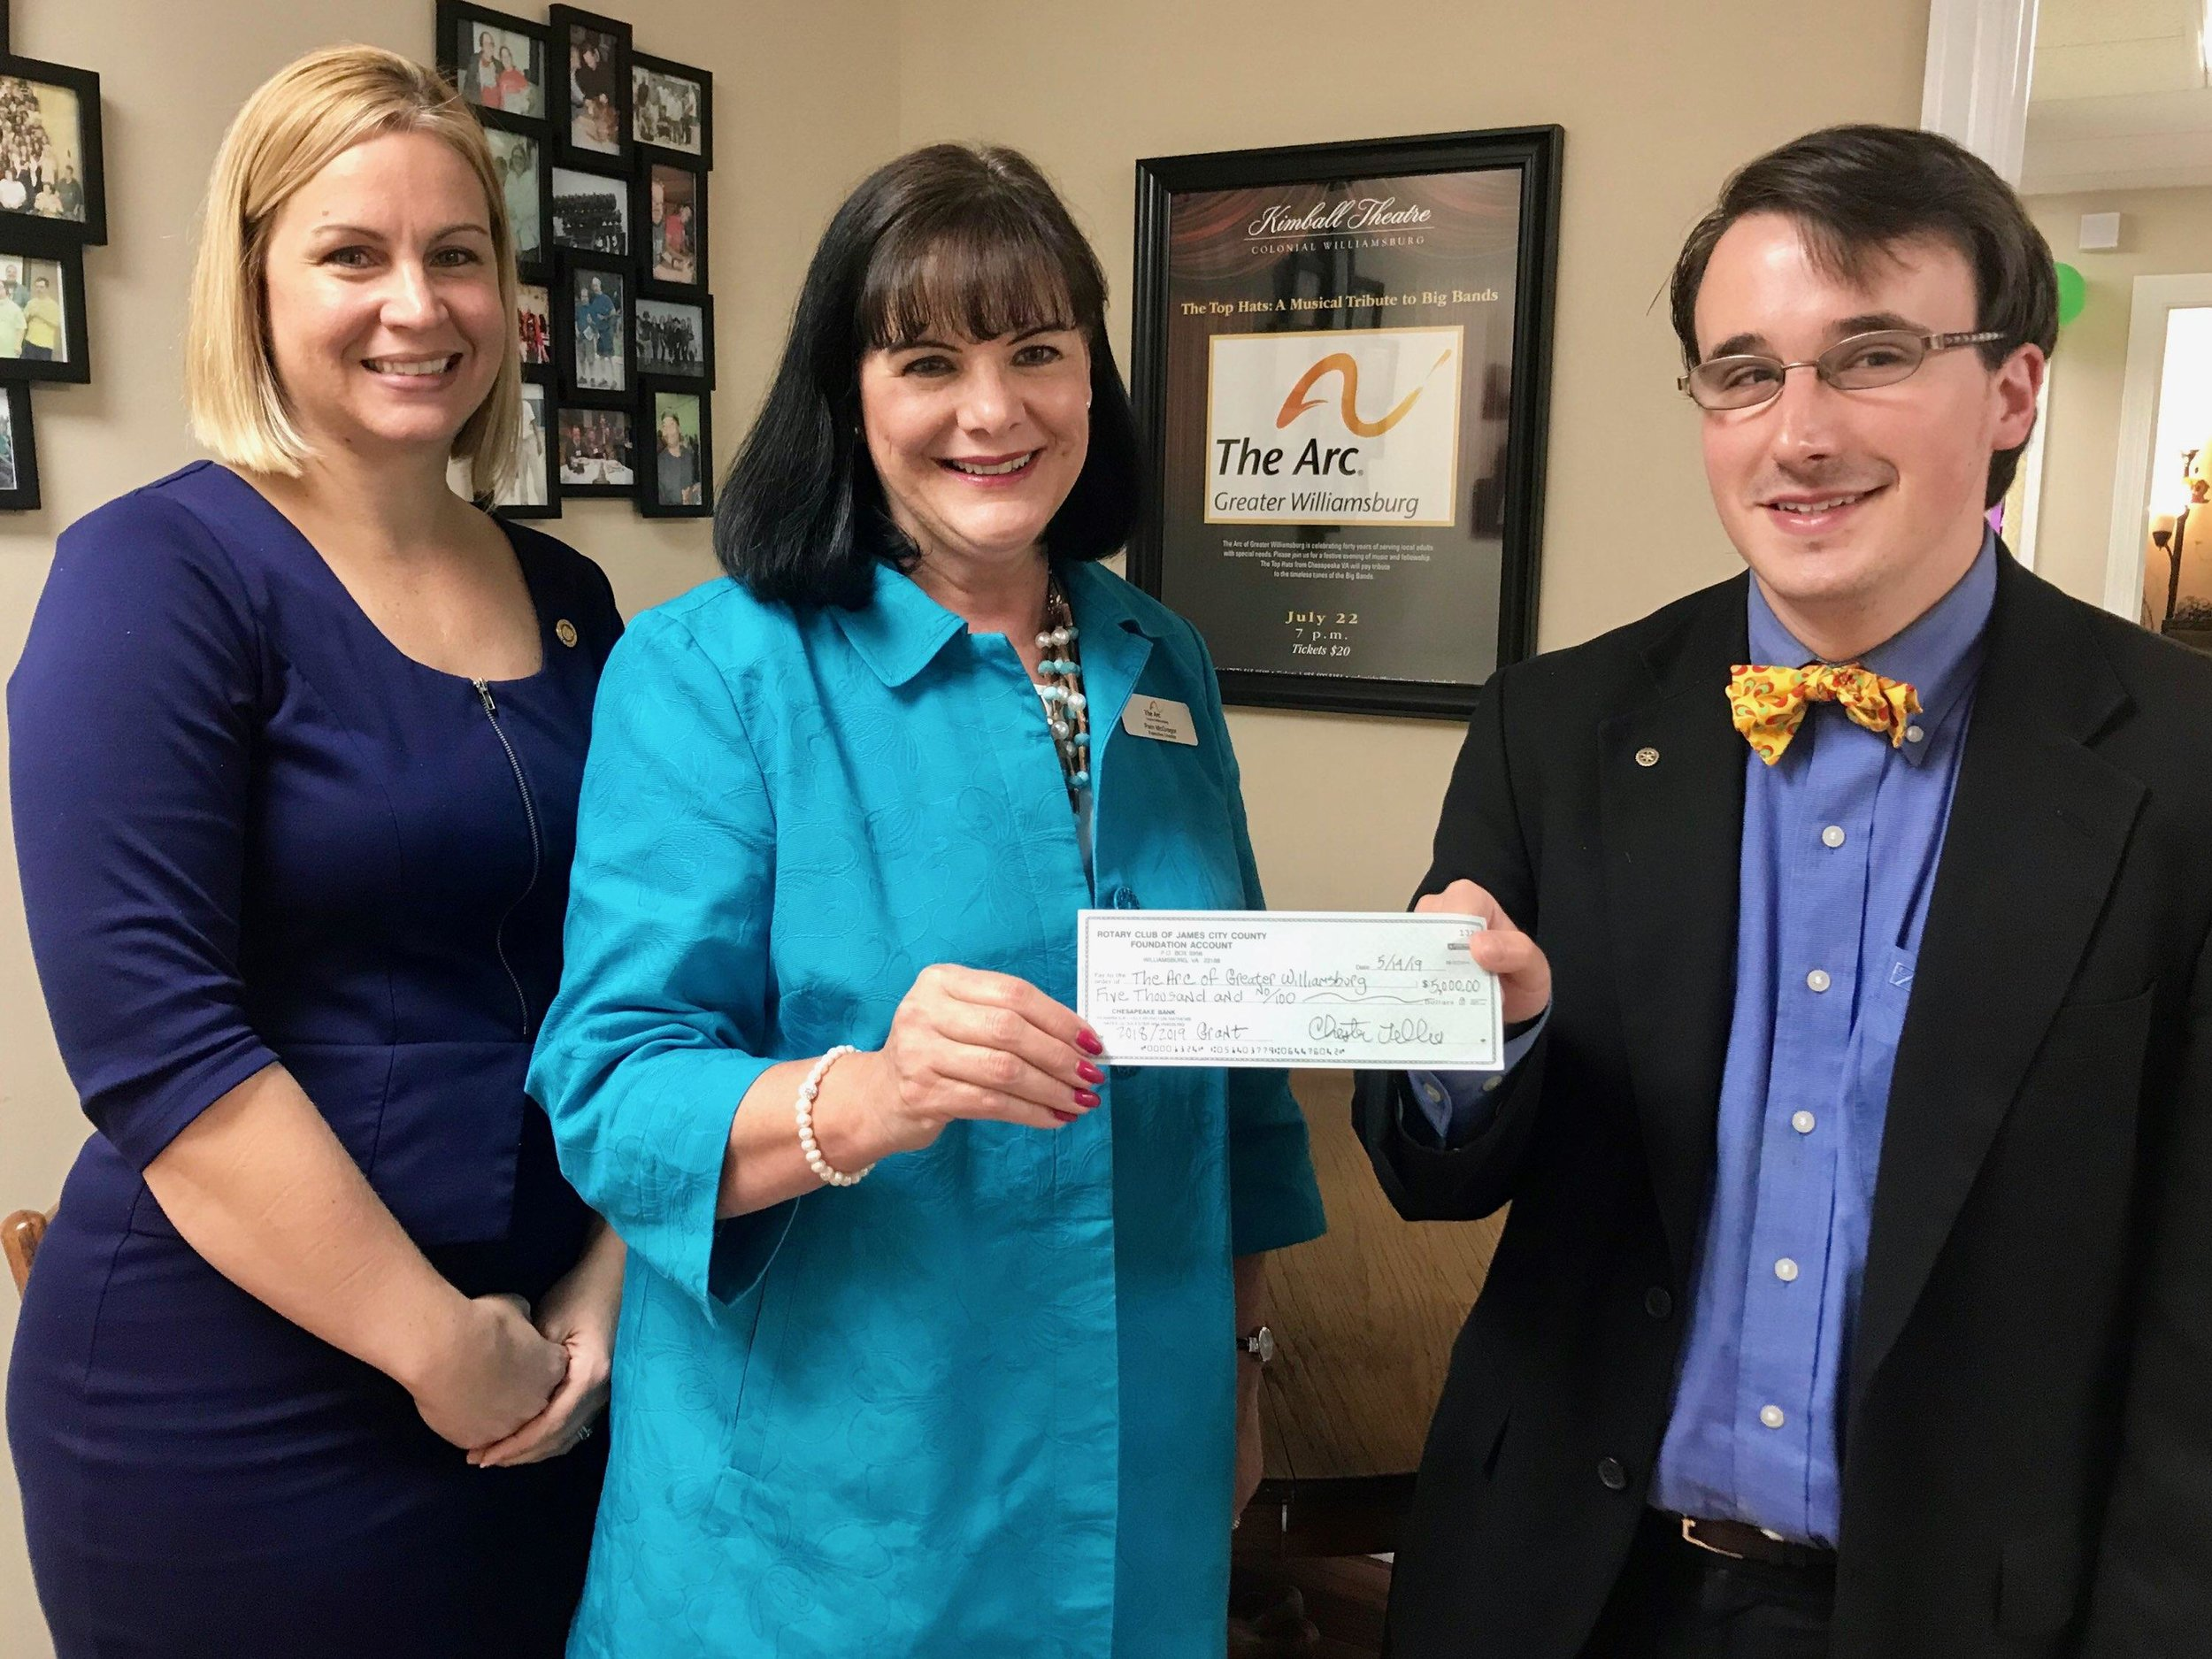 ARC support - Our Club was pleased to provide The Arc of Greater Williamsburg with $5,000 to help fund their client transportation program. This program enables their clients to be employed in Williamsburg.